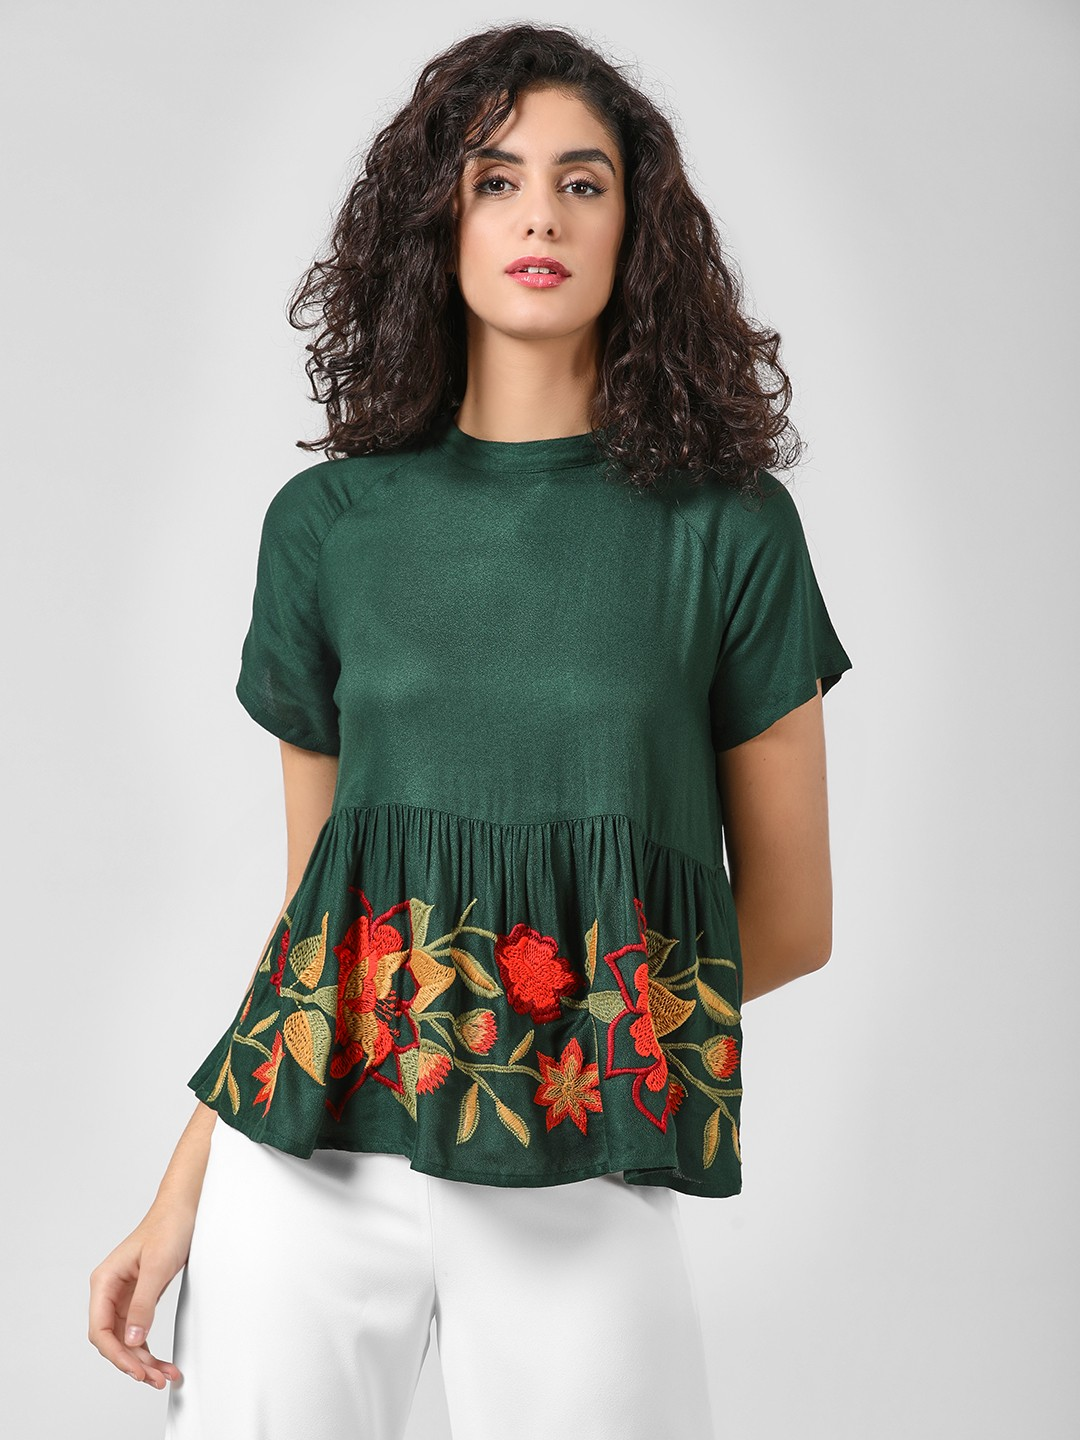 Buy Rena Love Floral Print Peplum Top For Women: Buy Rena Love Green Ladder Back Floral Embroidered Blouse